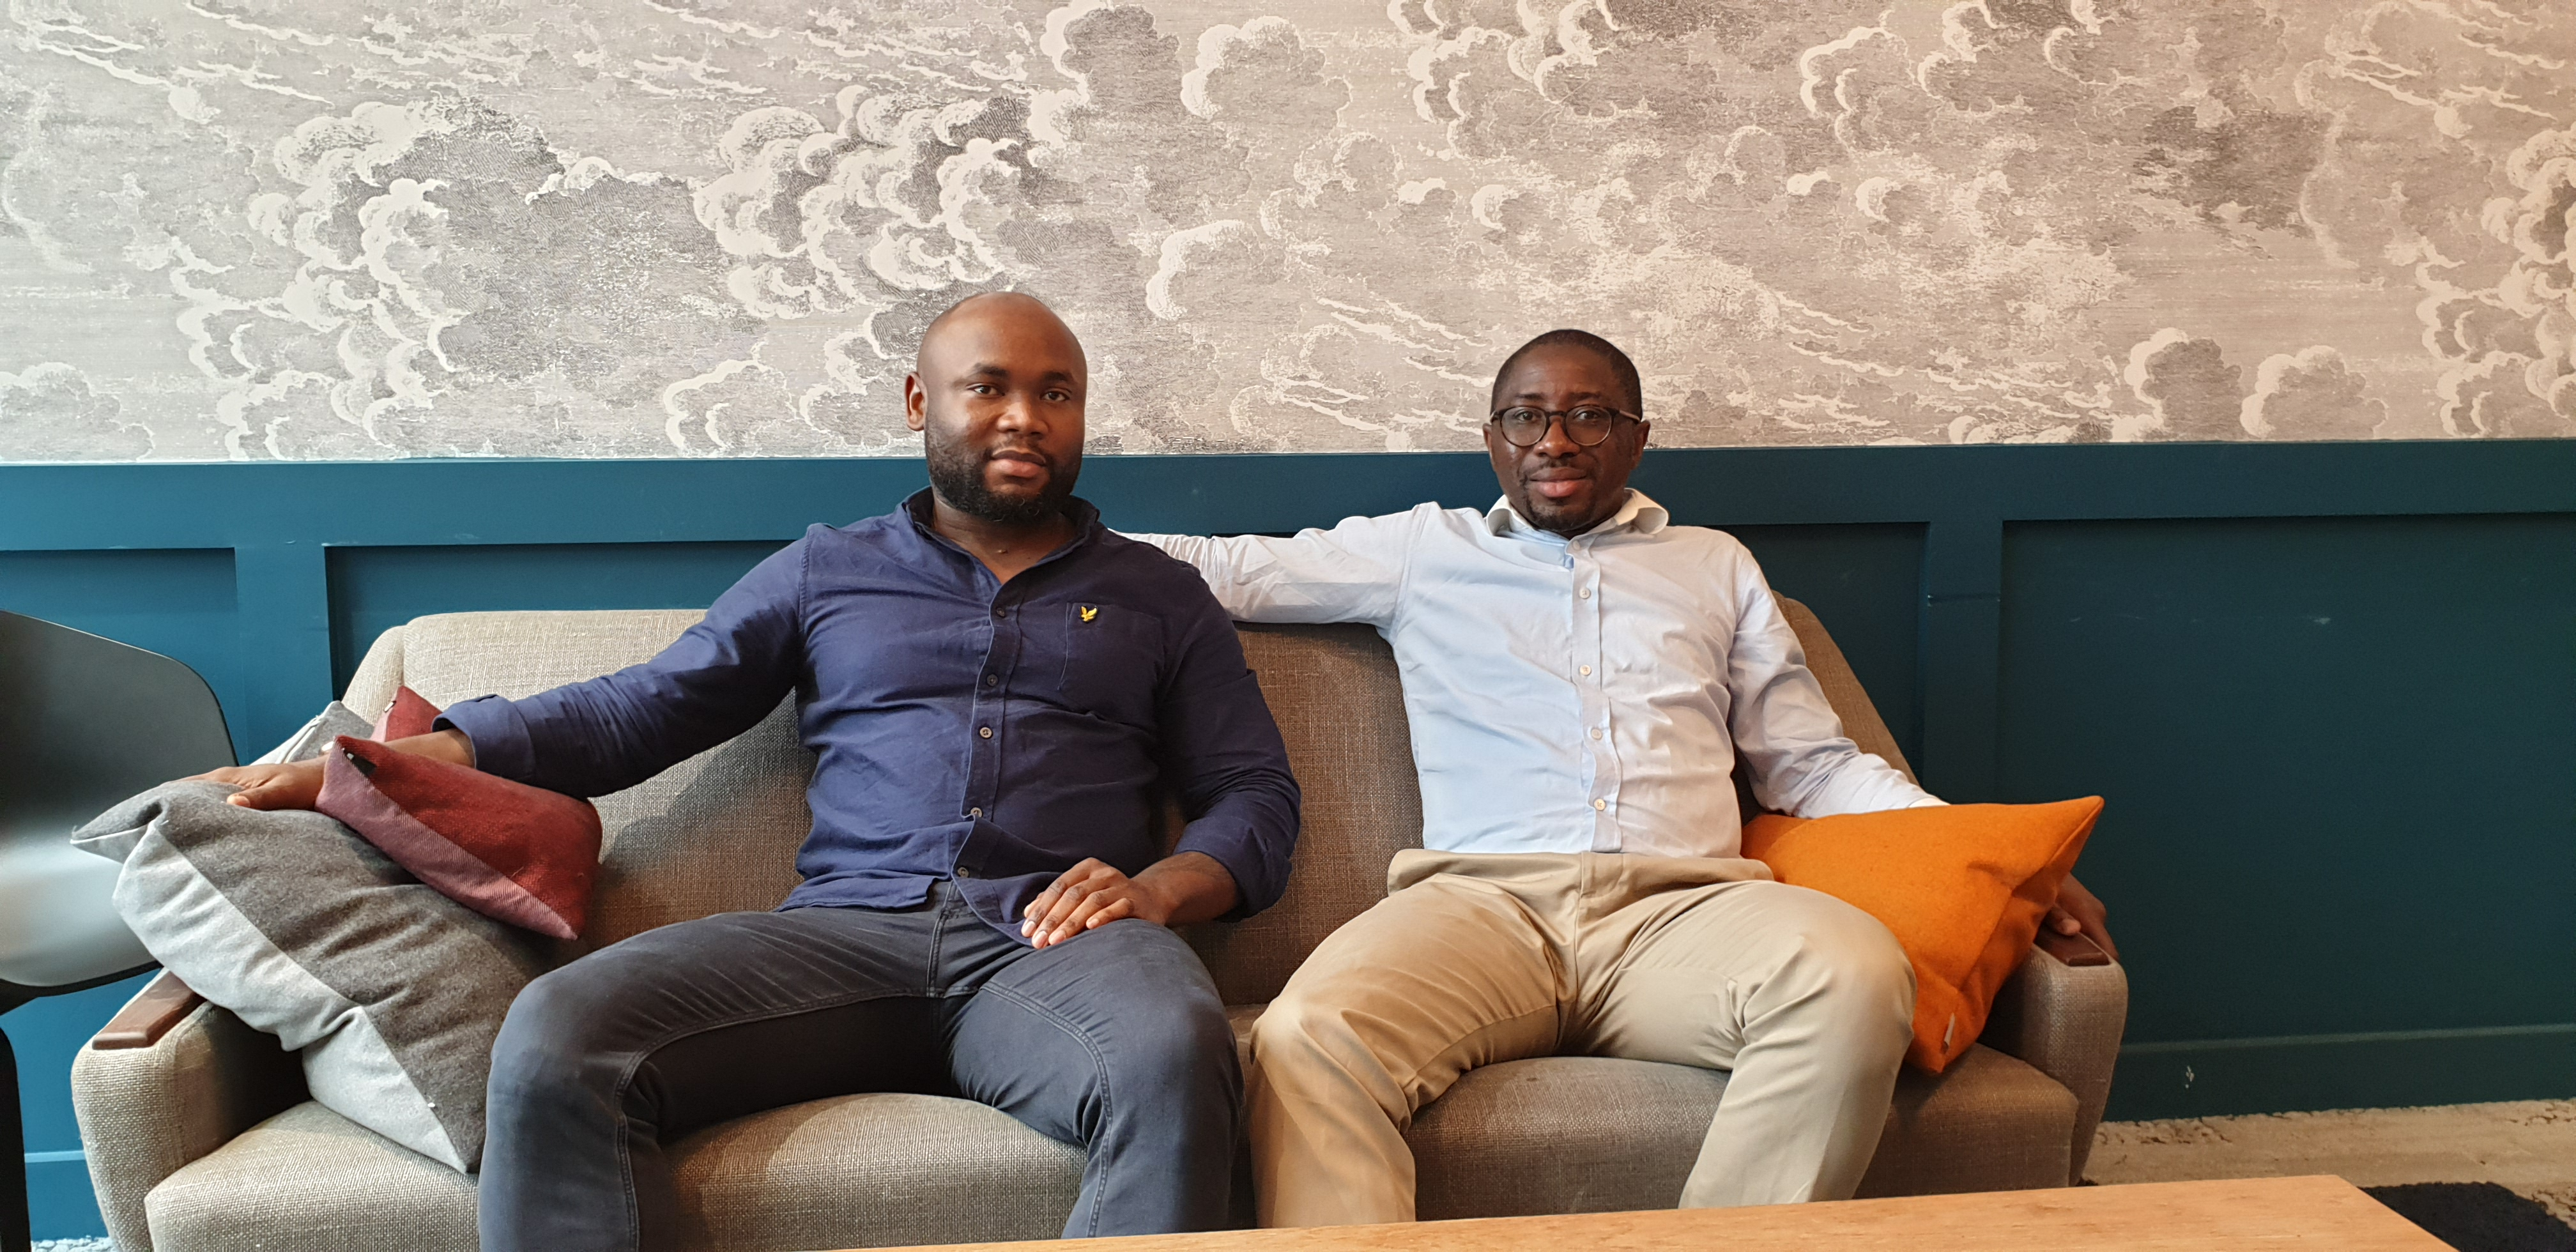 vertofx founders Anthony Oduwole and Ola Oyetayo